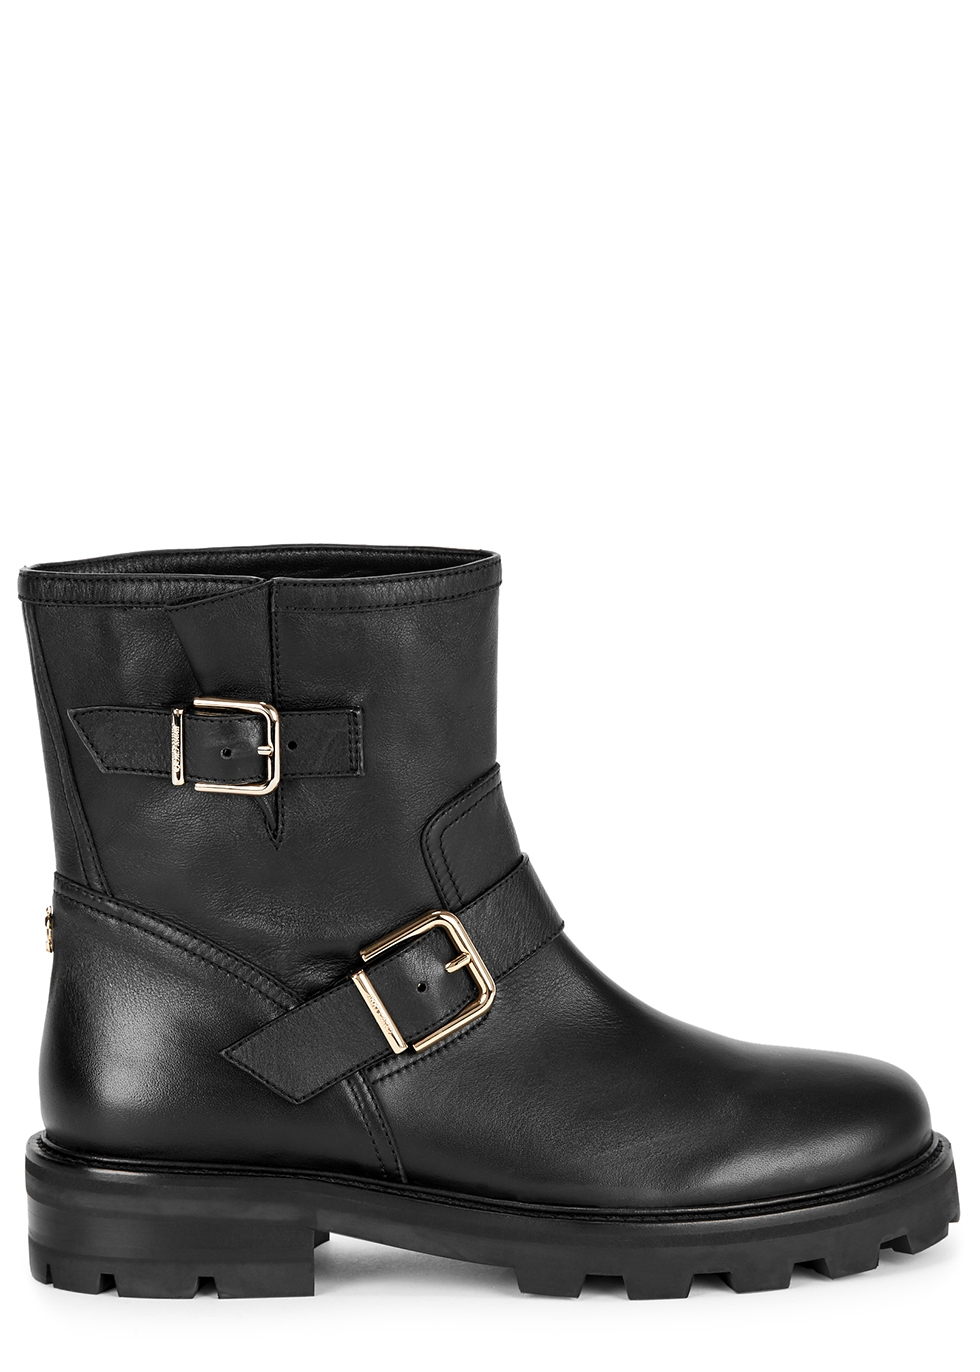 Youth black leather ankle boots